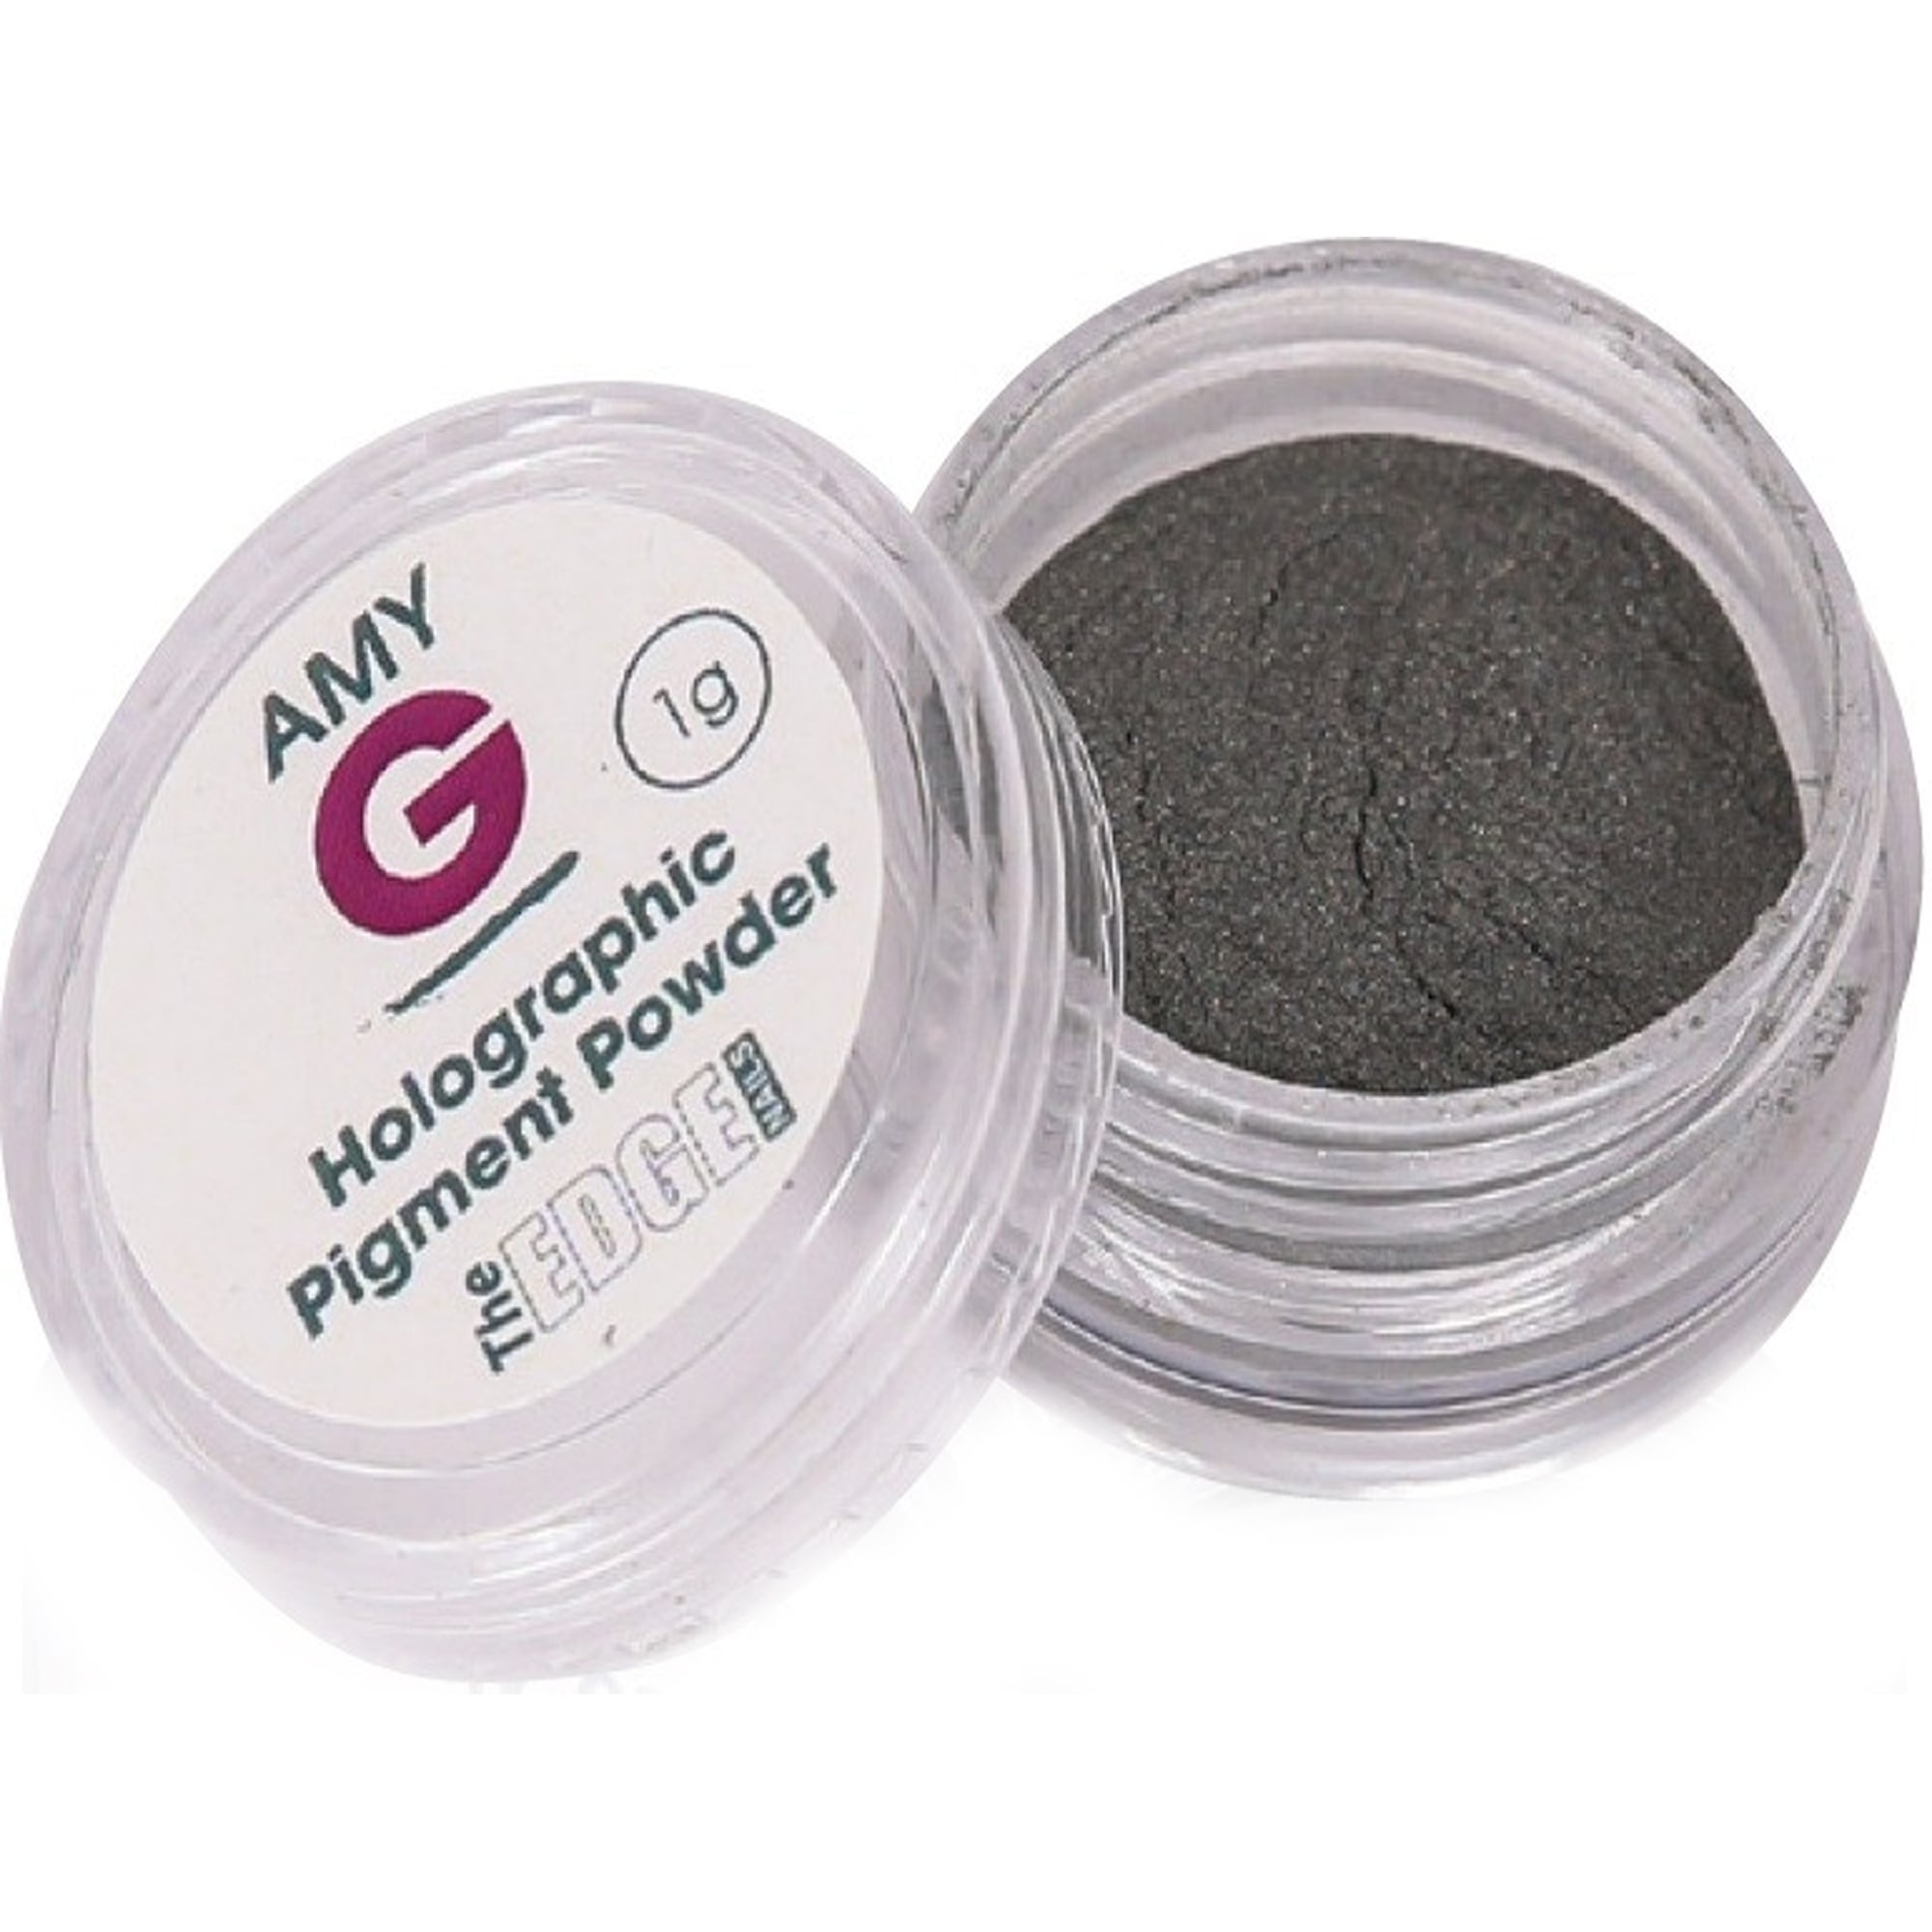 Amy G - Mirror Pigment Nail Art Powders - Holographic 1g (3003016)